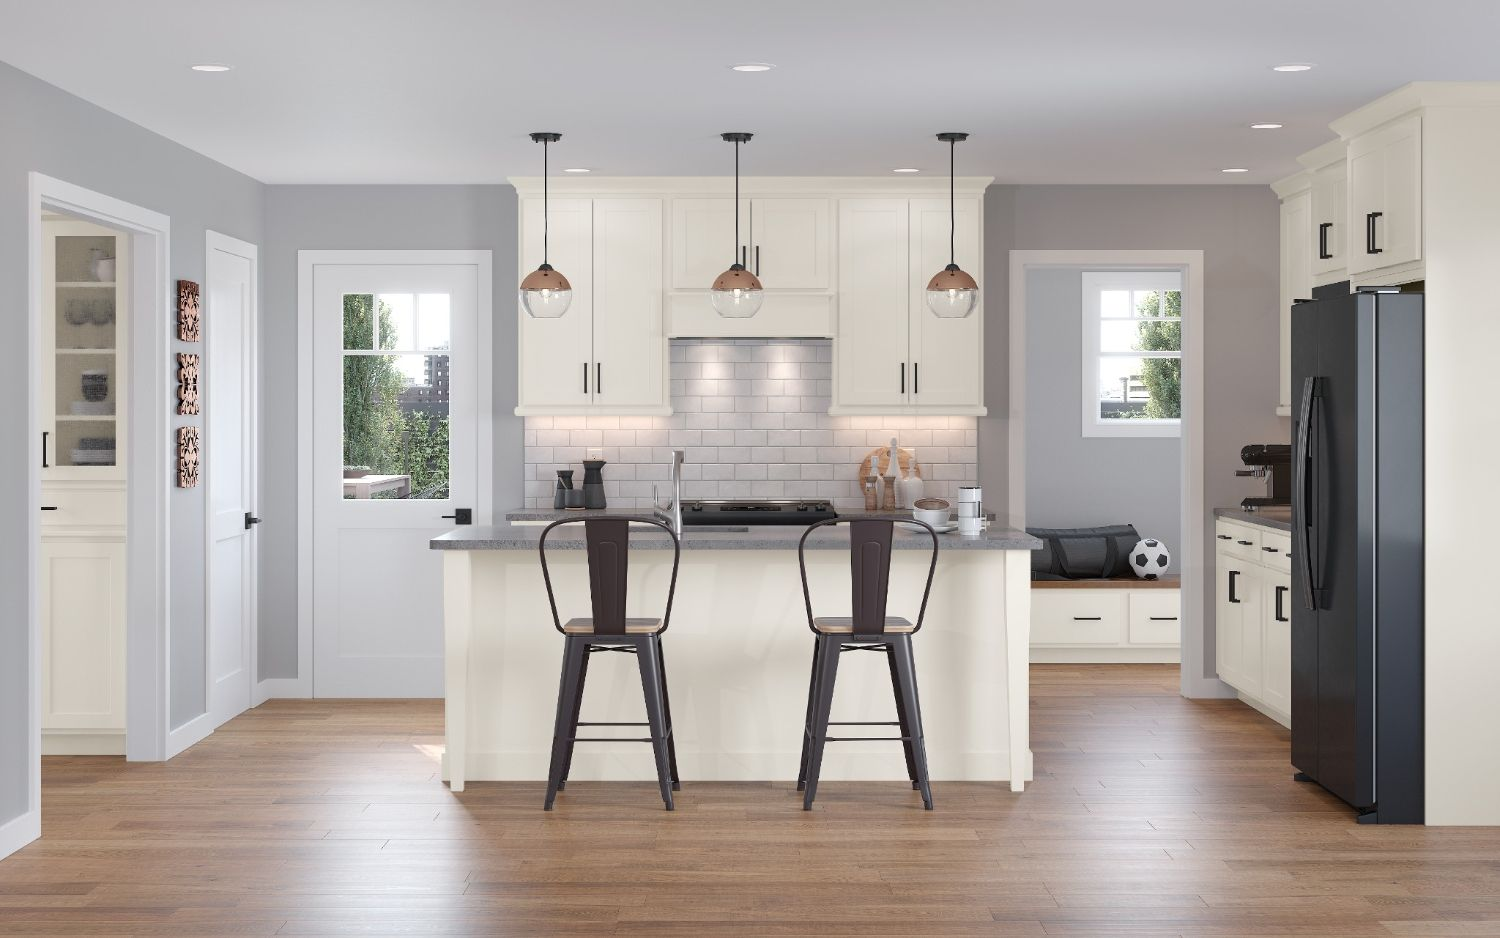 San Mateo Collection American Woodmark In 2020 Modern Kitchen Design American Woodmark Cabinets Semi Custom Kitchen Cabinets